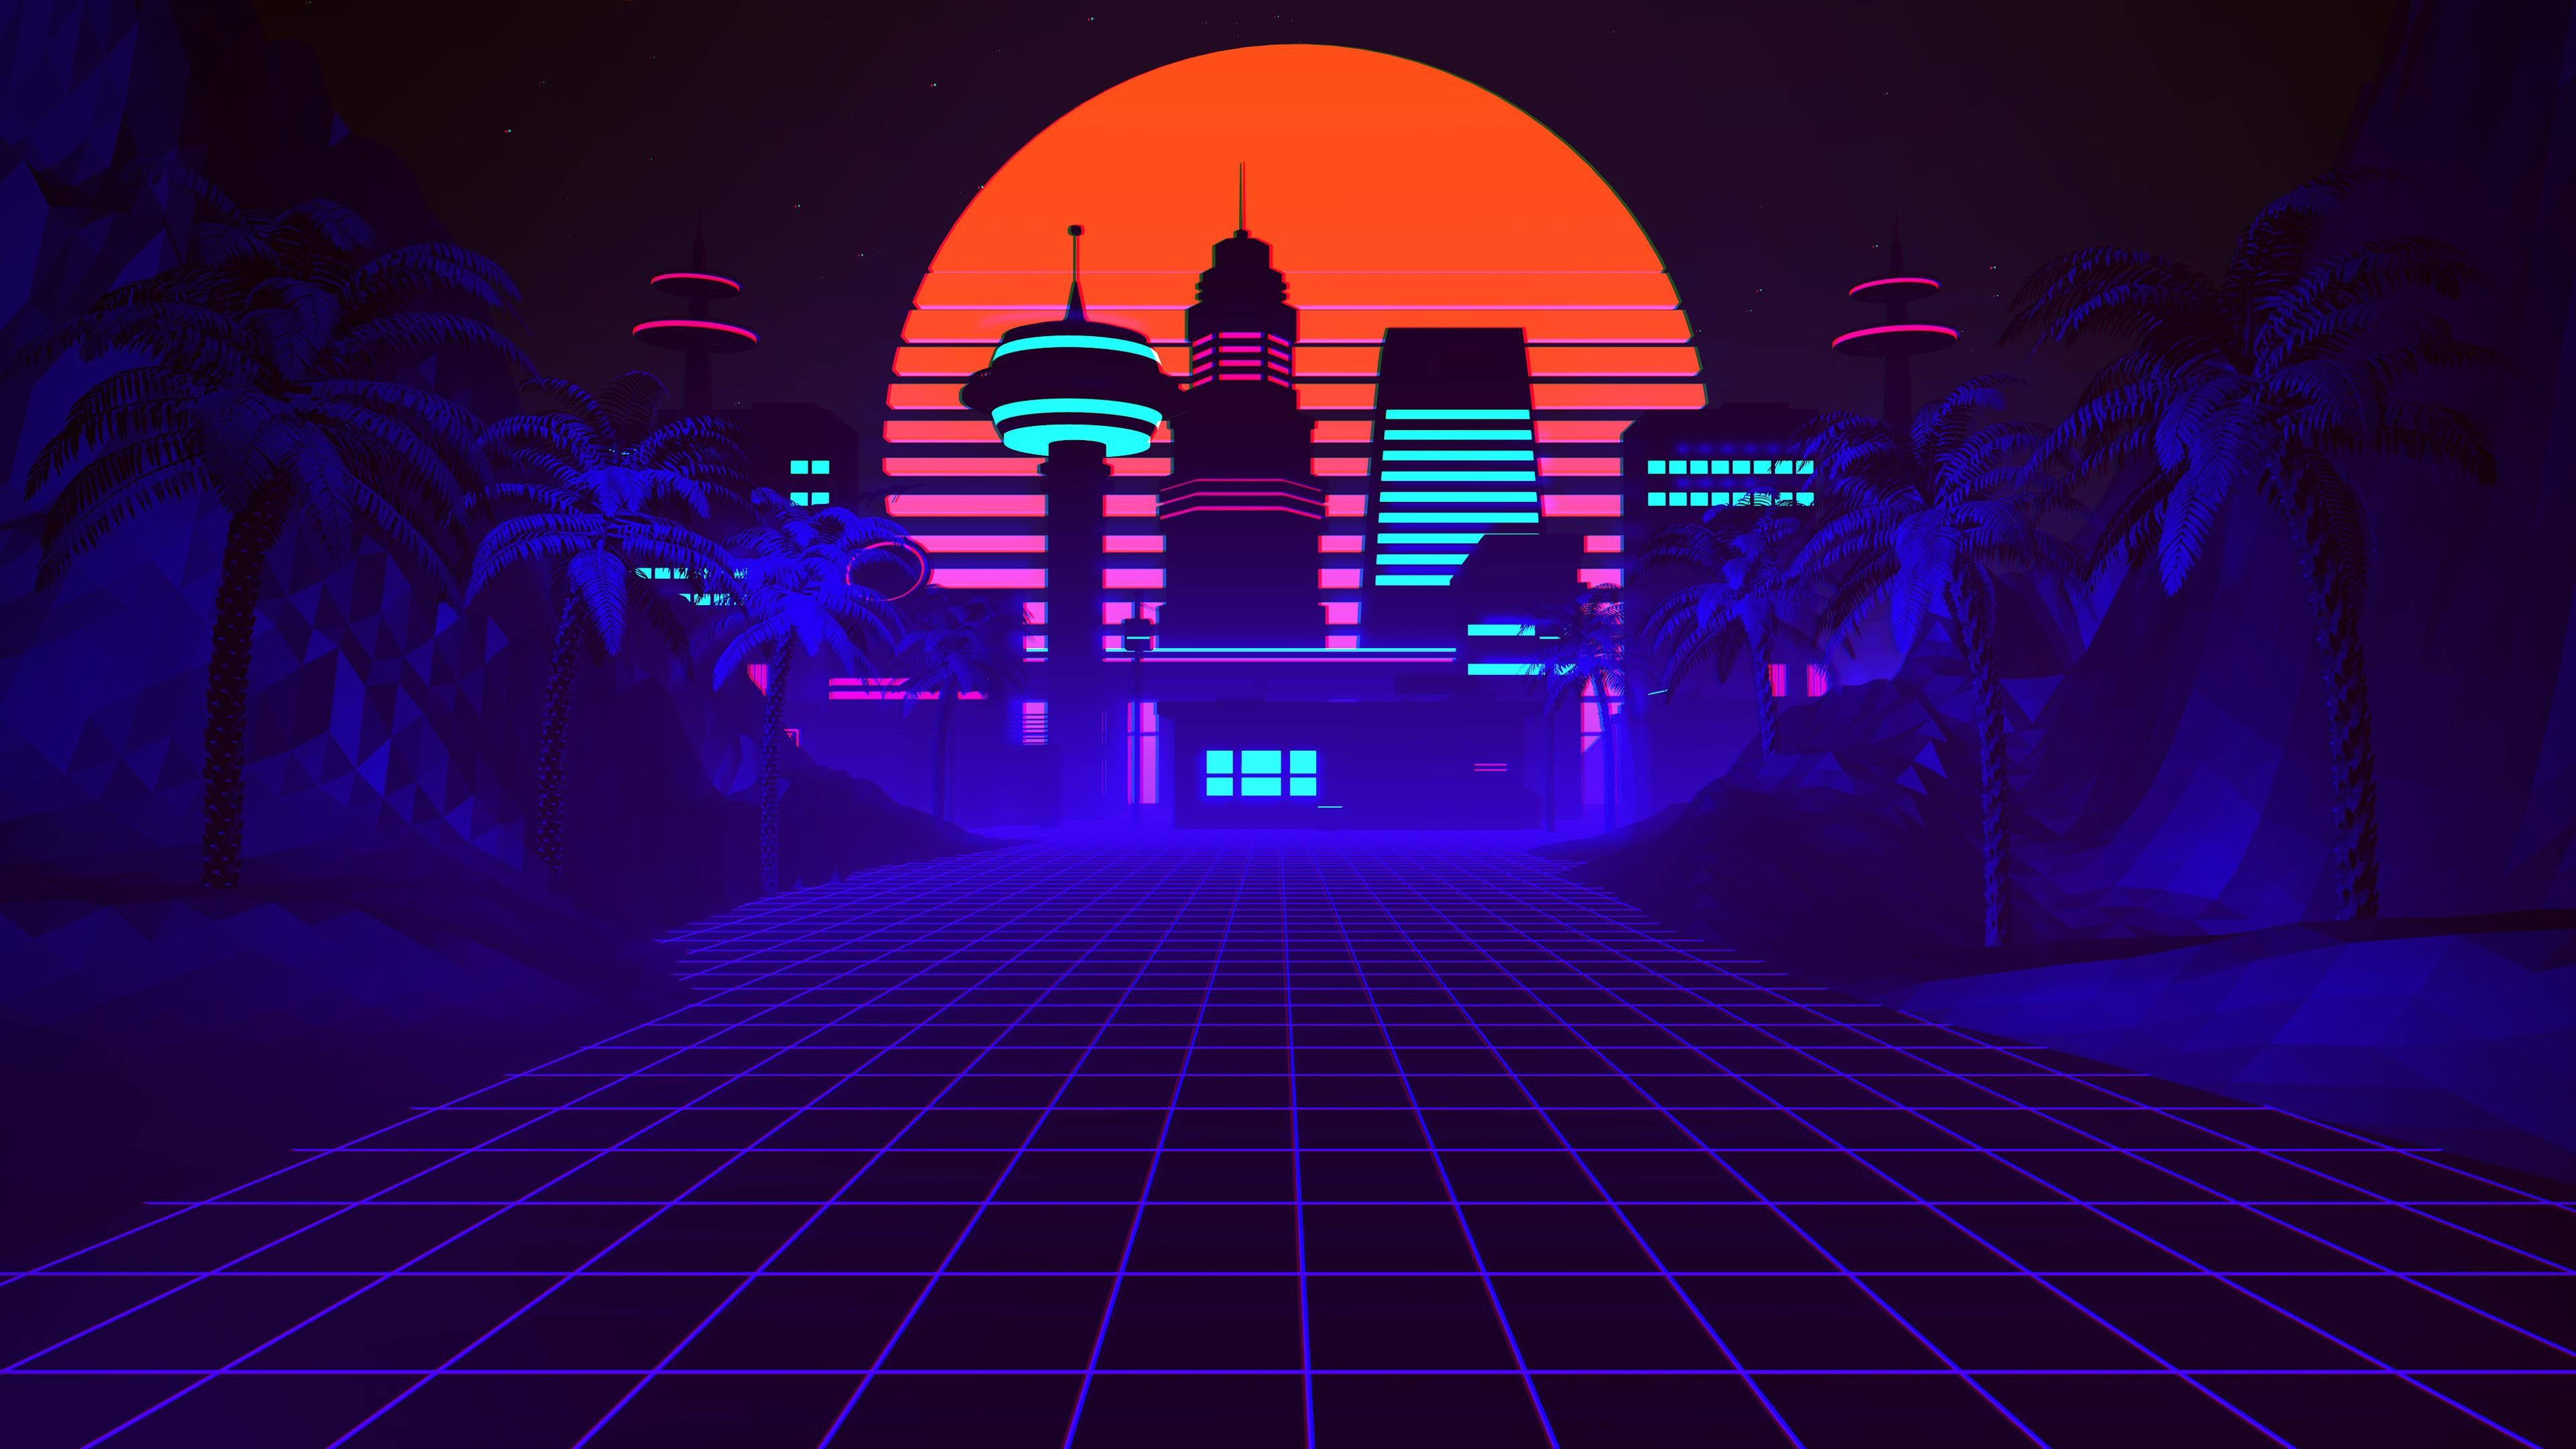 80s Synthwave Wallpapers On Wallpaperdog